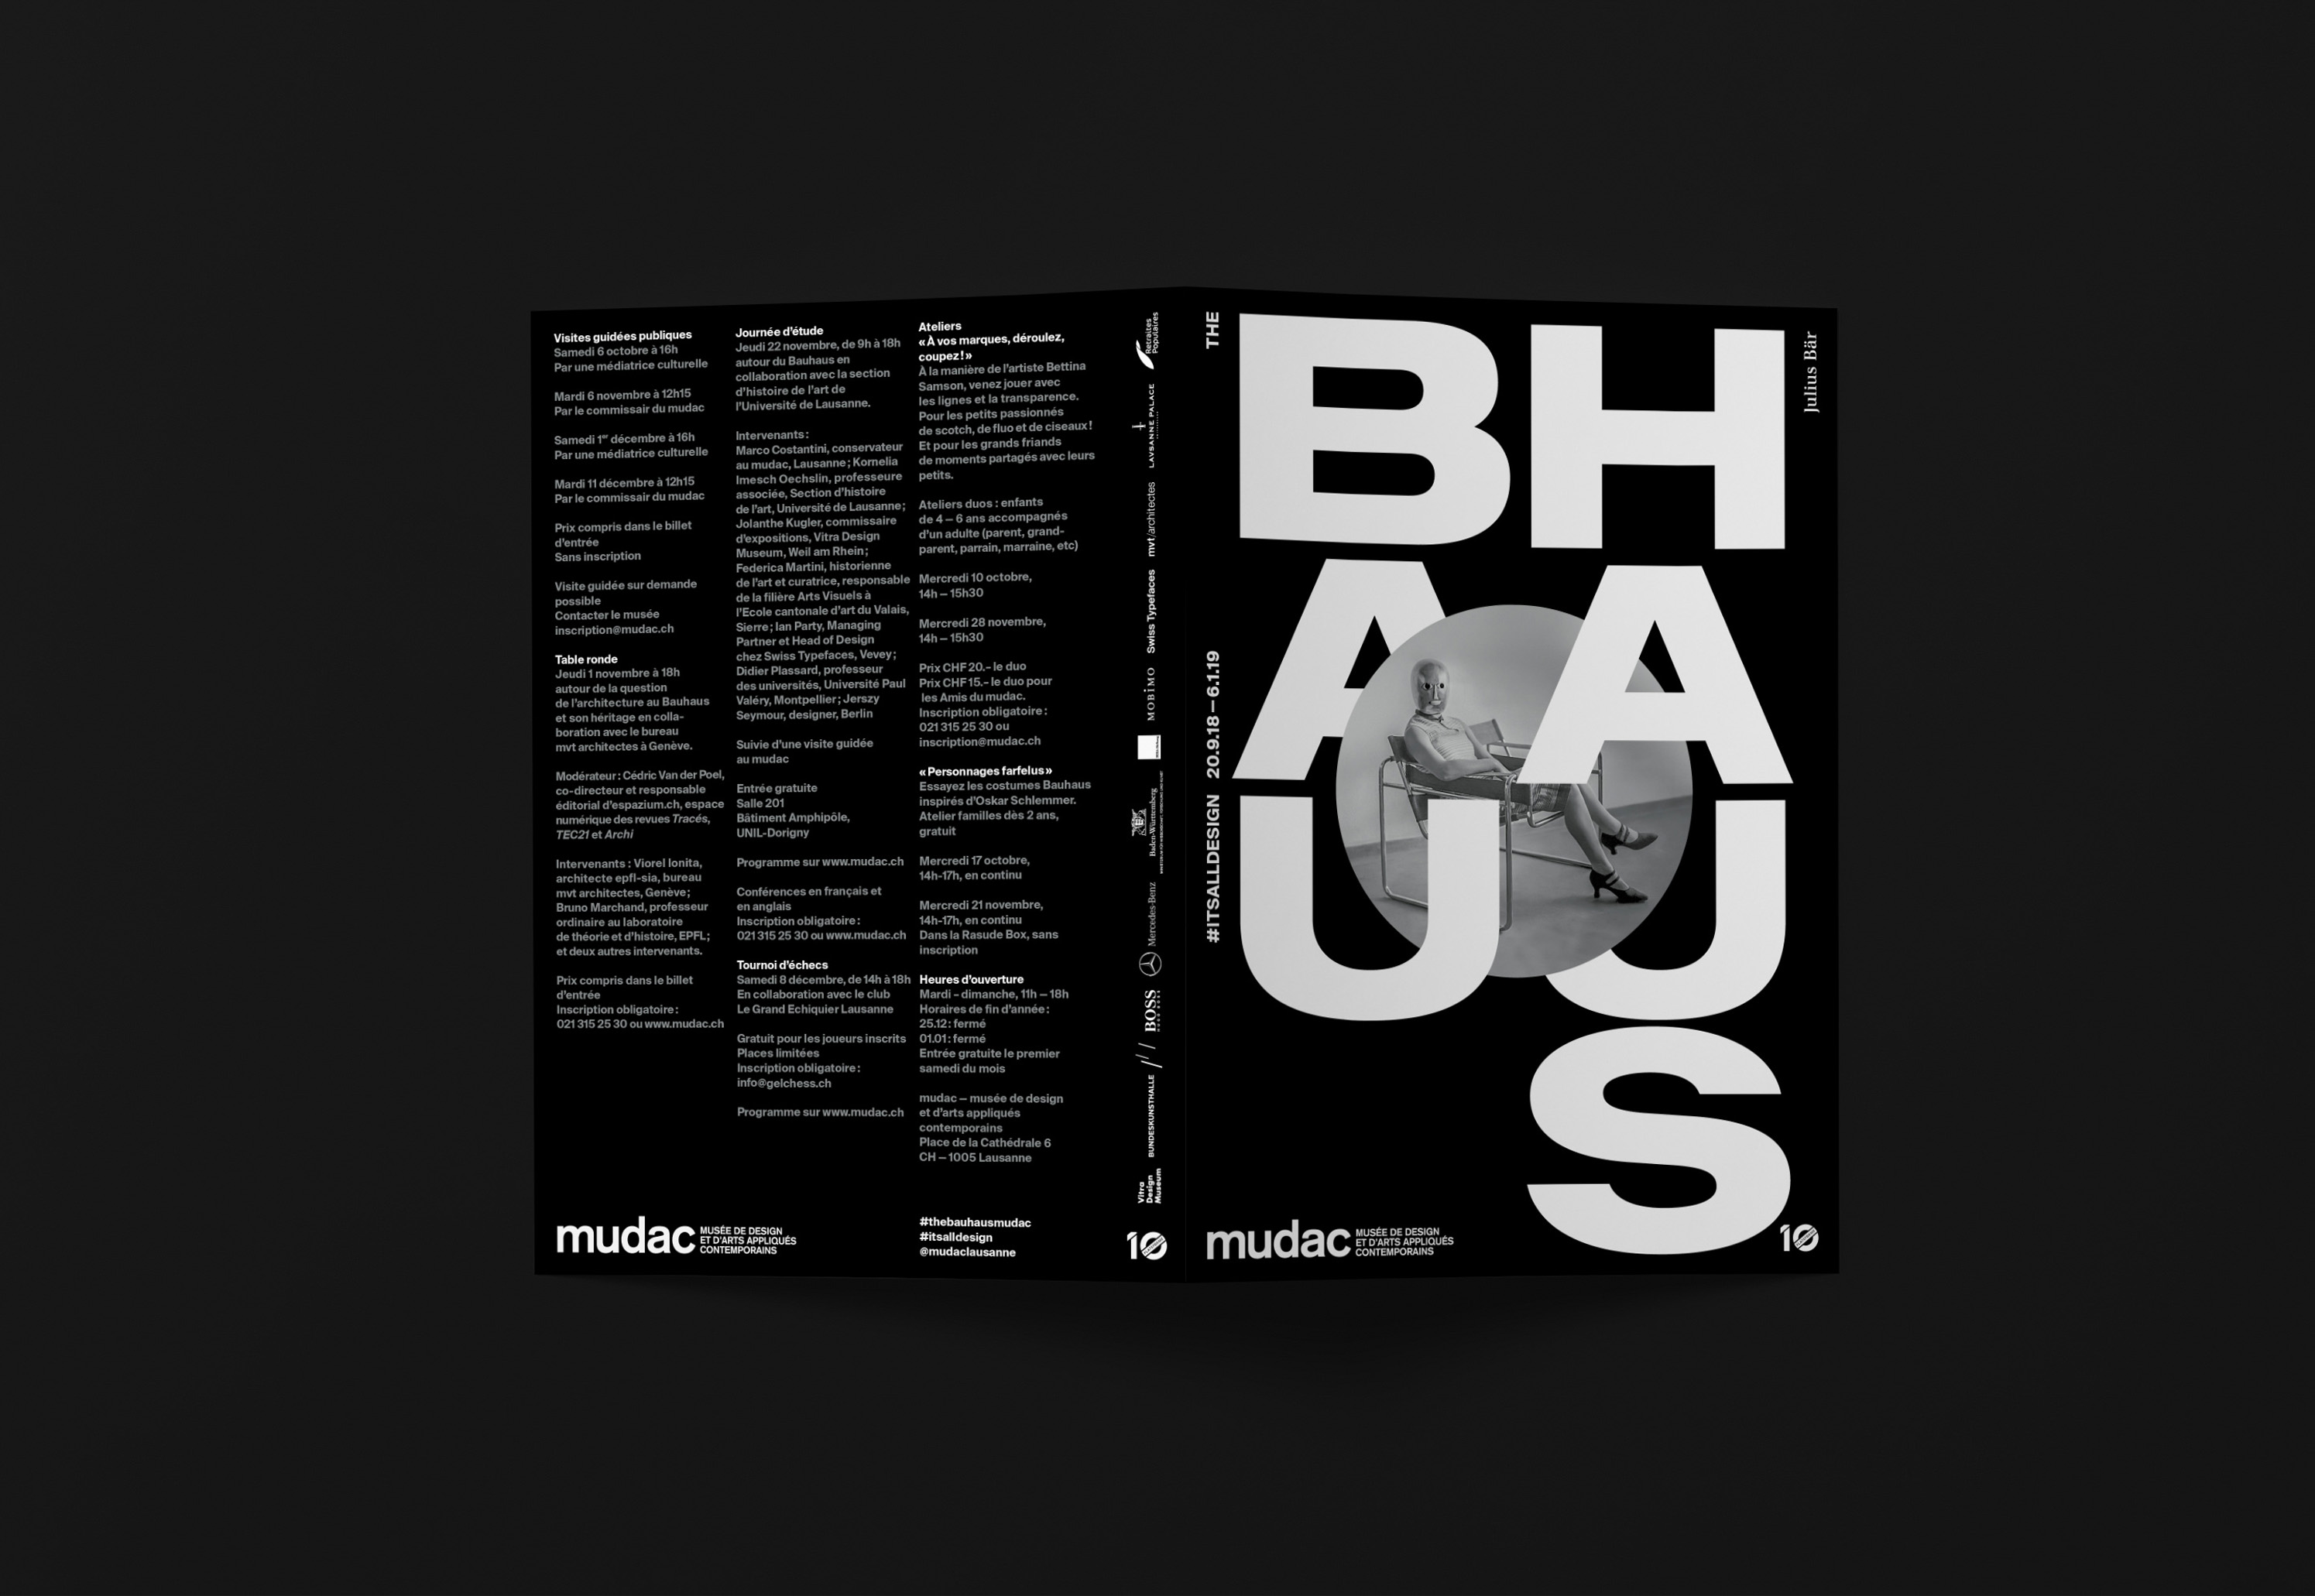 MUDAC_Bauhaus_invitation_1